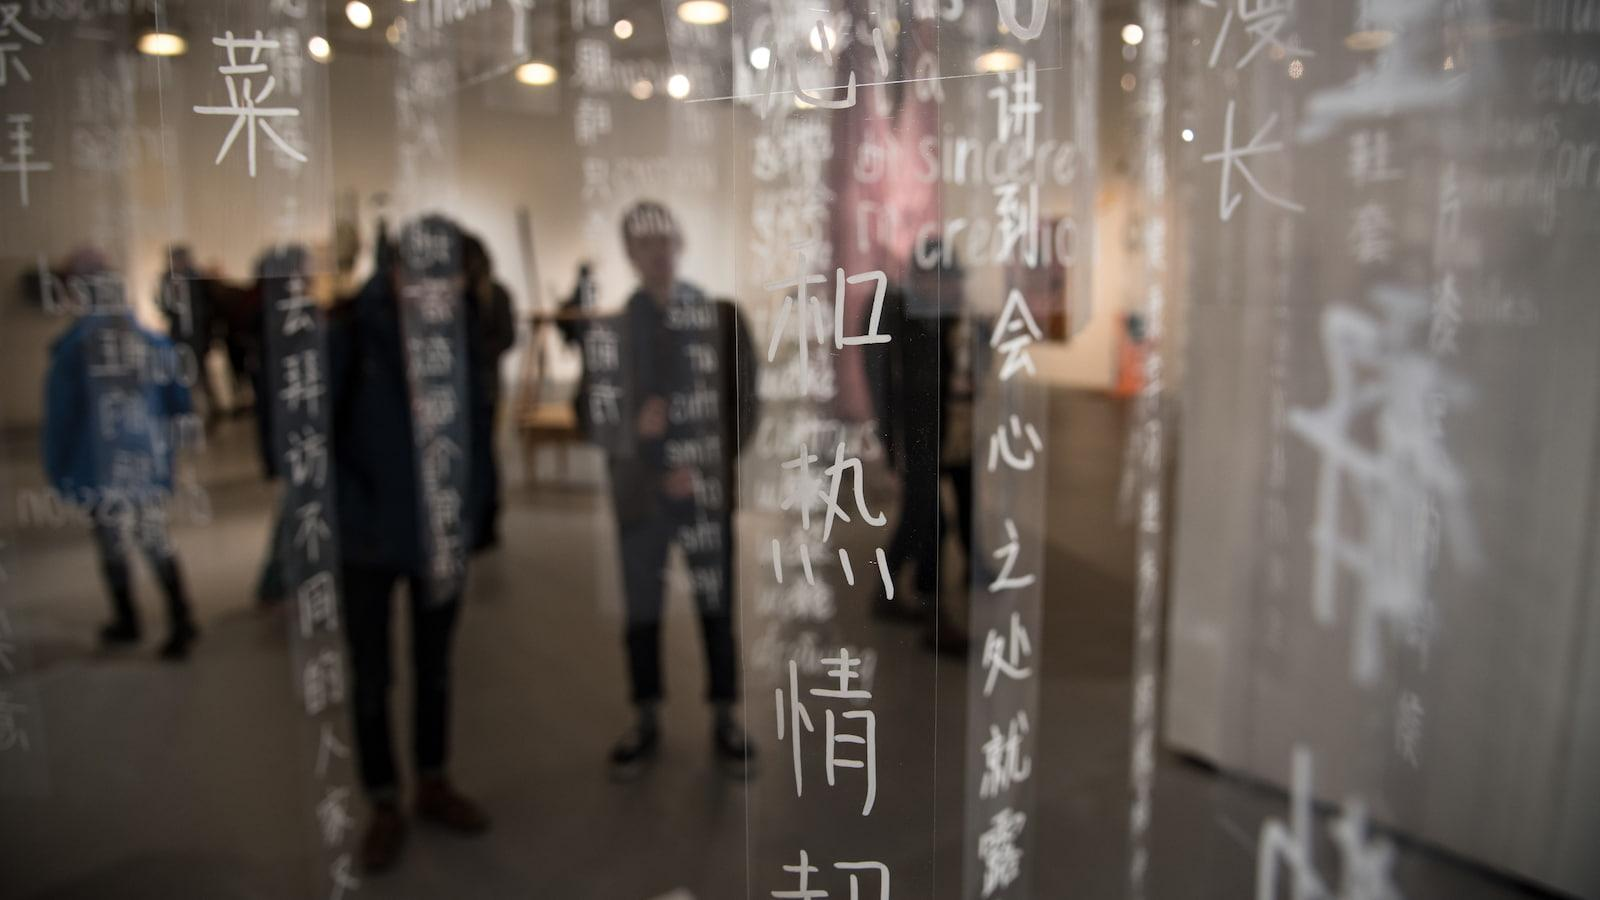 Students behind clear, long strips with Chinese writing in white letters.